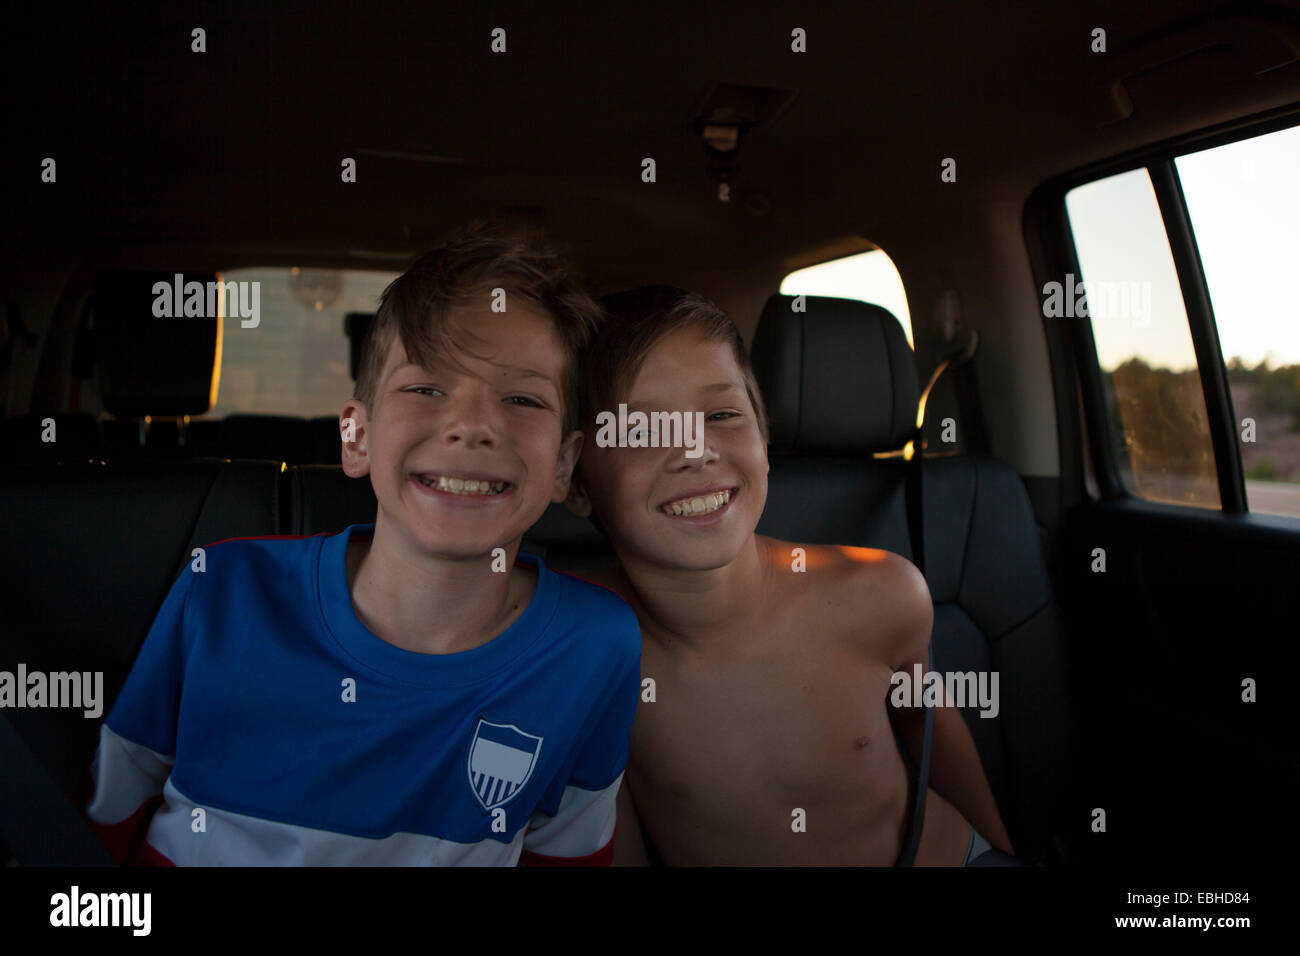 Portrait of brothers smiling in car back seat - Stock Image